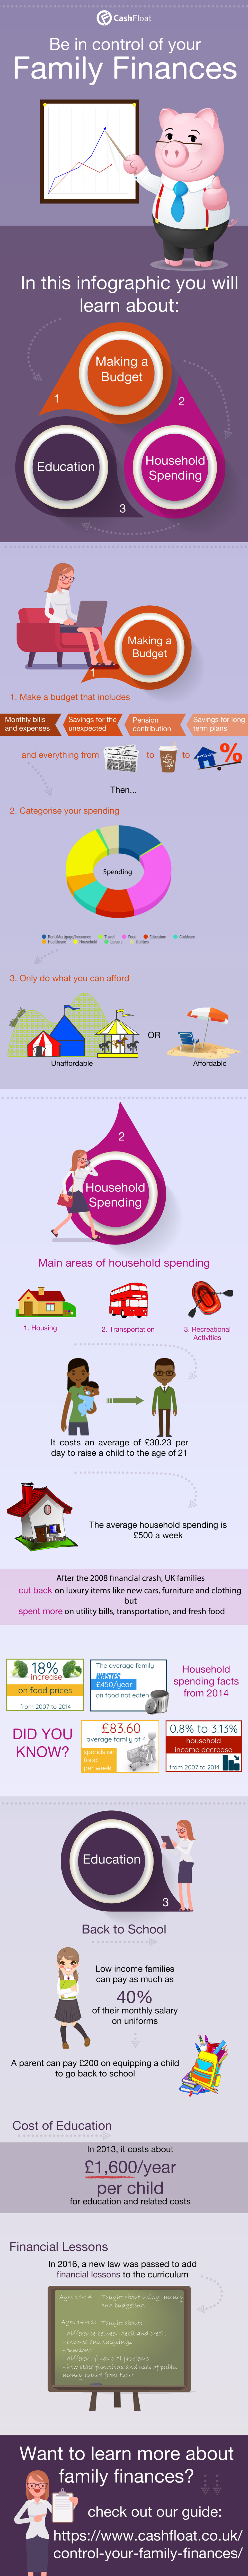 manage your family finances infographic - Cashfloat